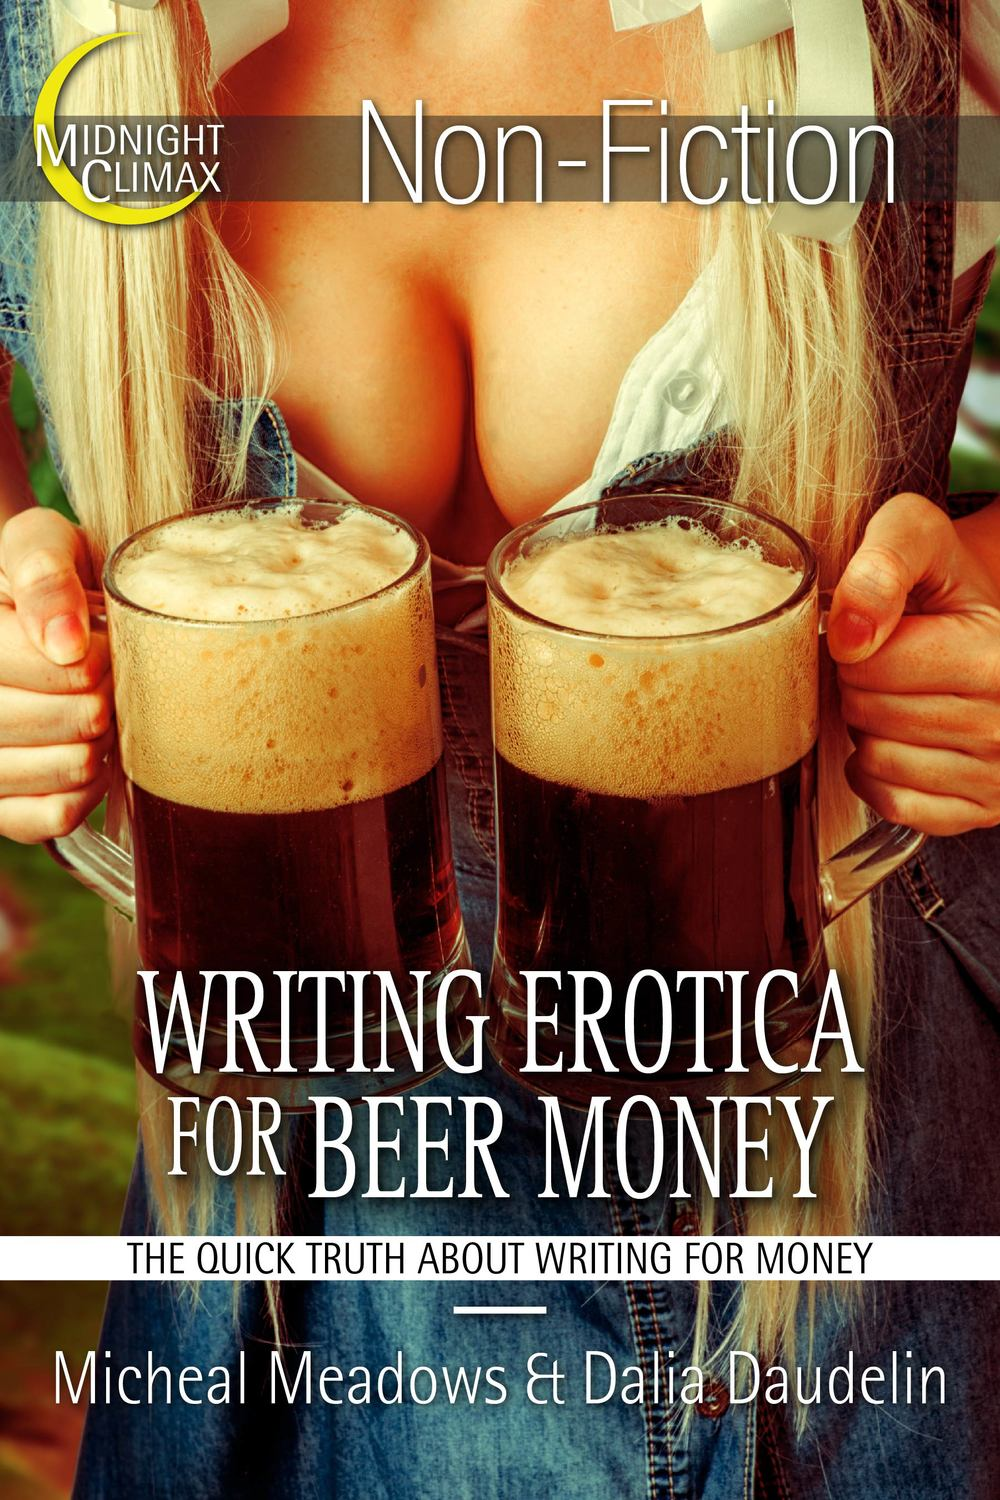 Writing Erotica for Beer Money_Non-Fiction.jpg